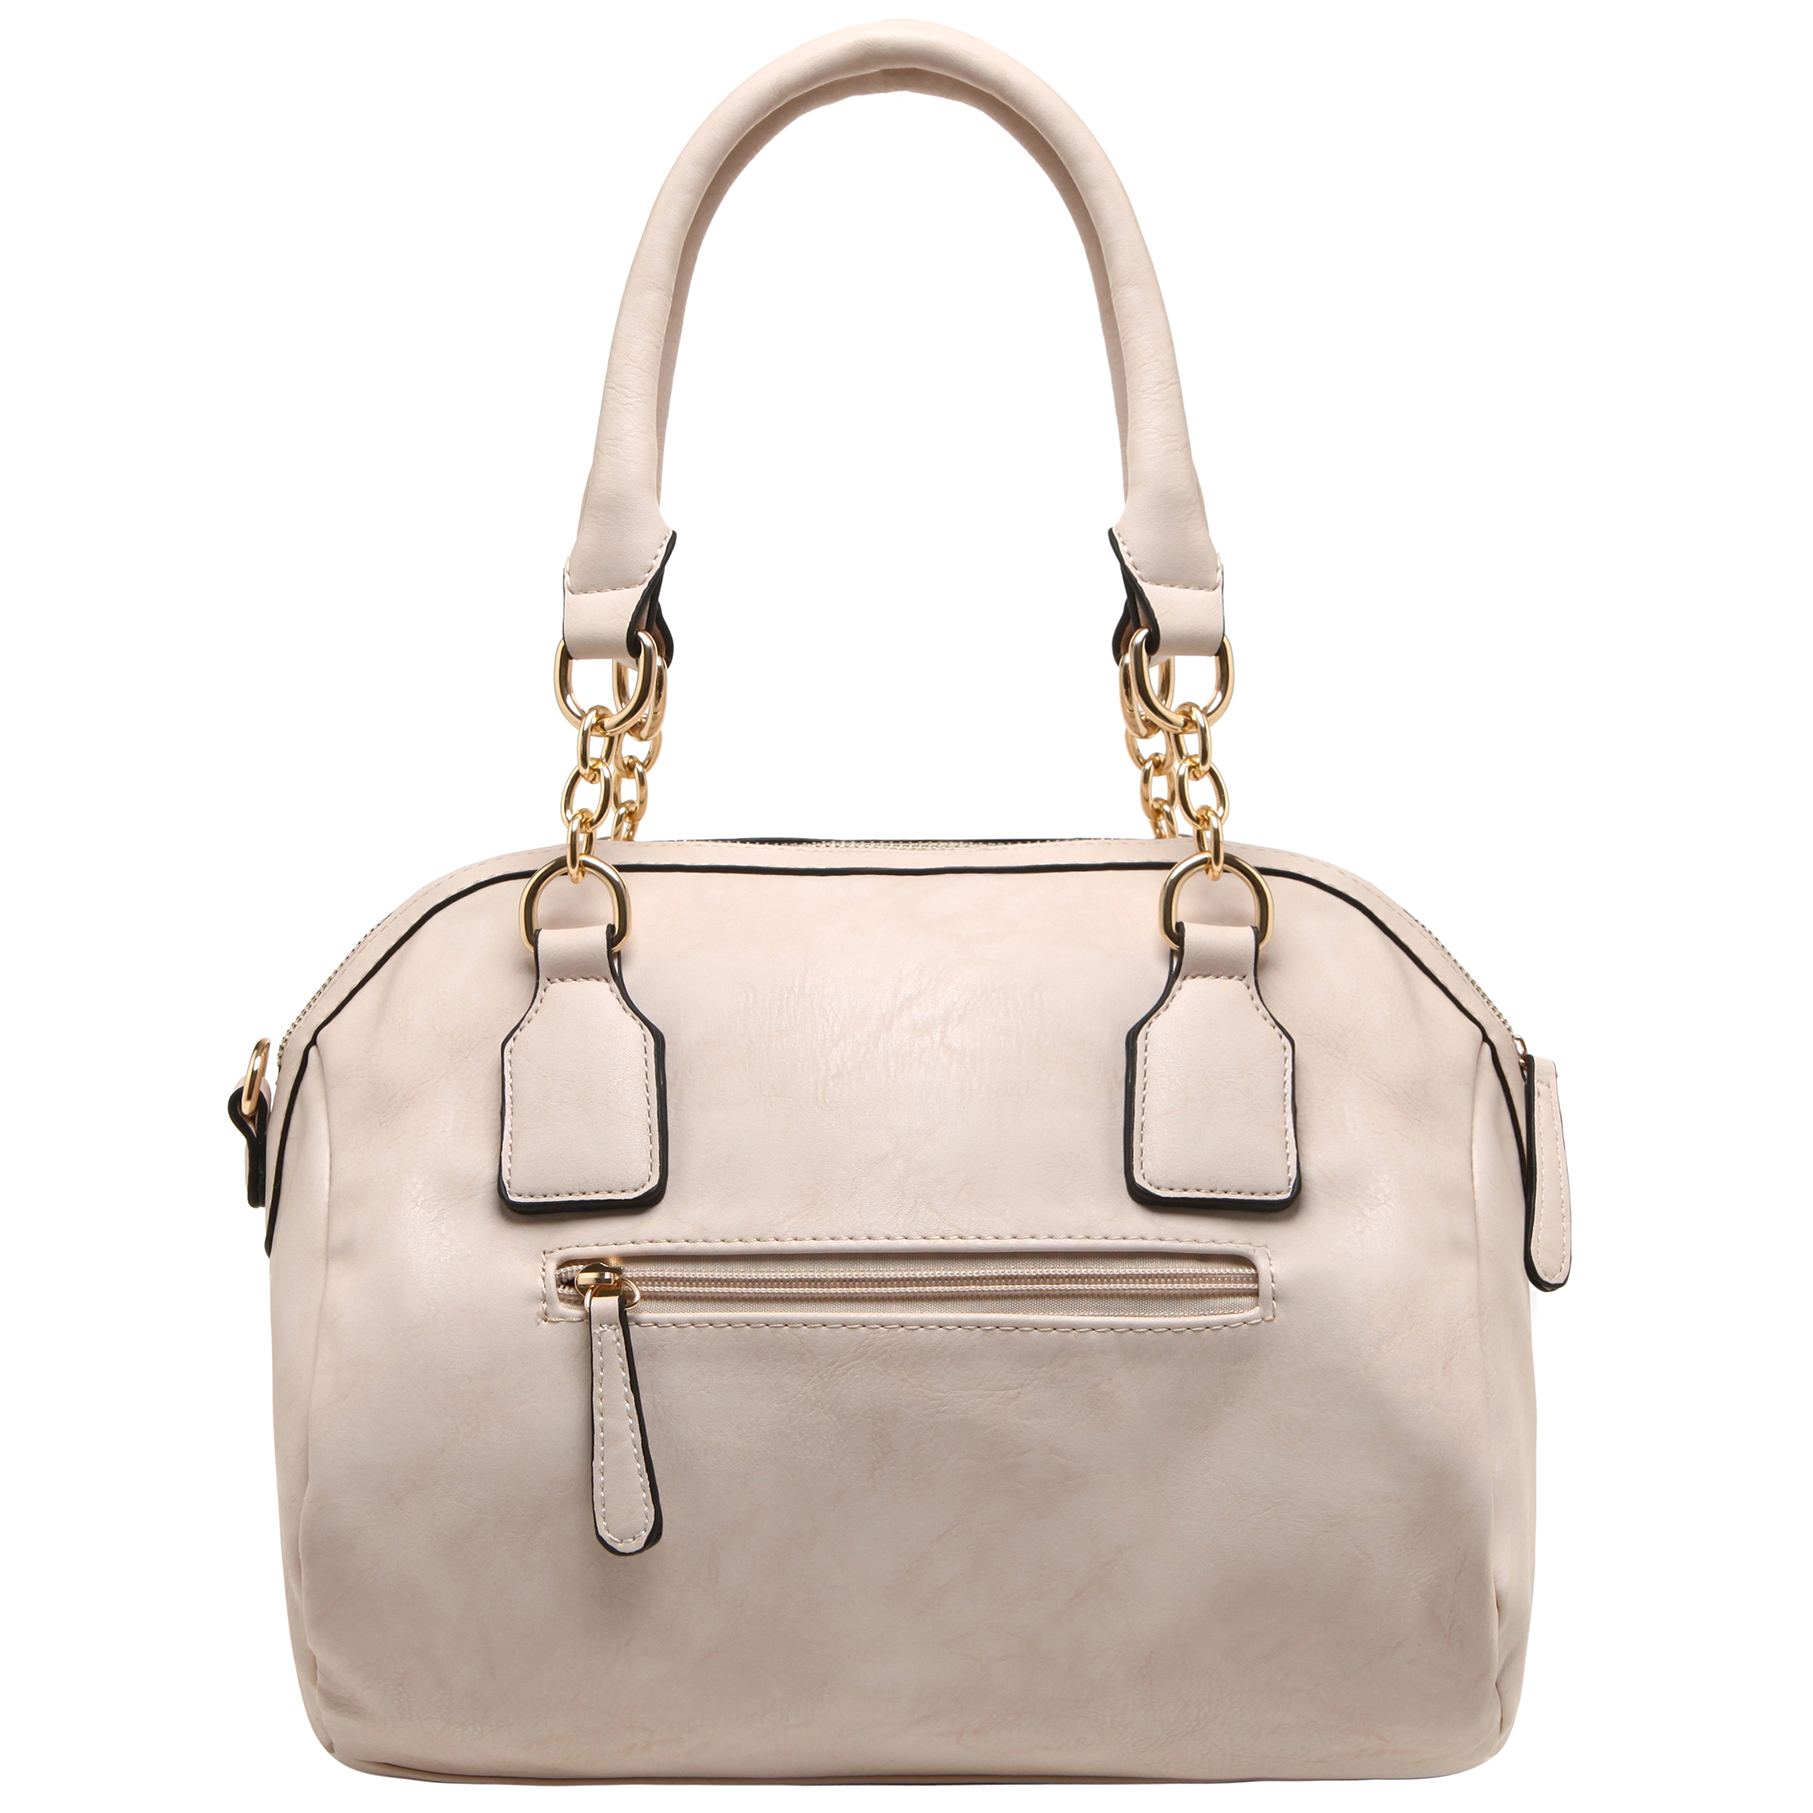 SONIA Beige Barrel Top Handle Tote handbag back image